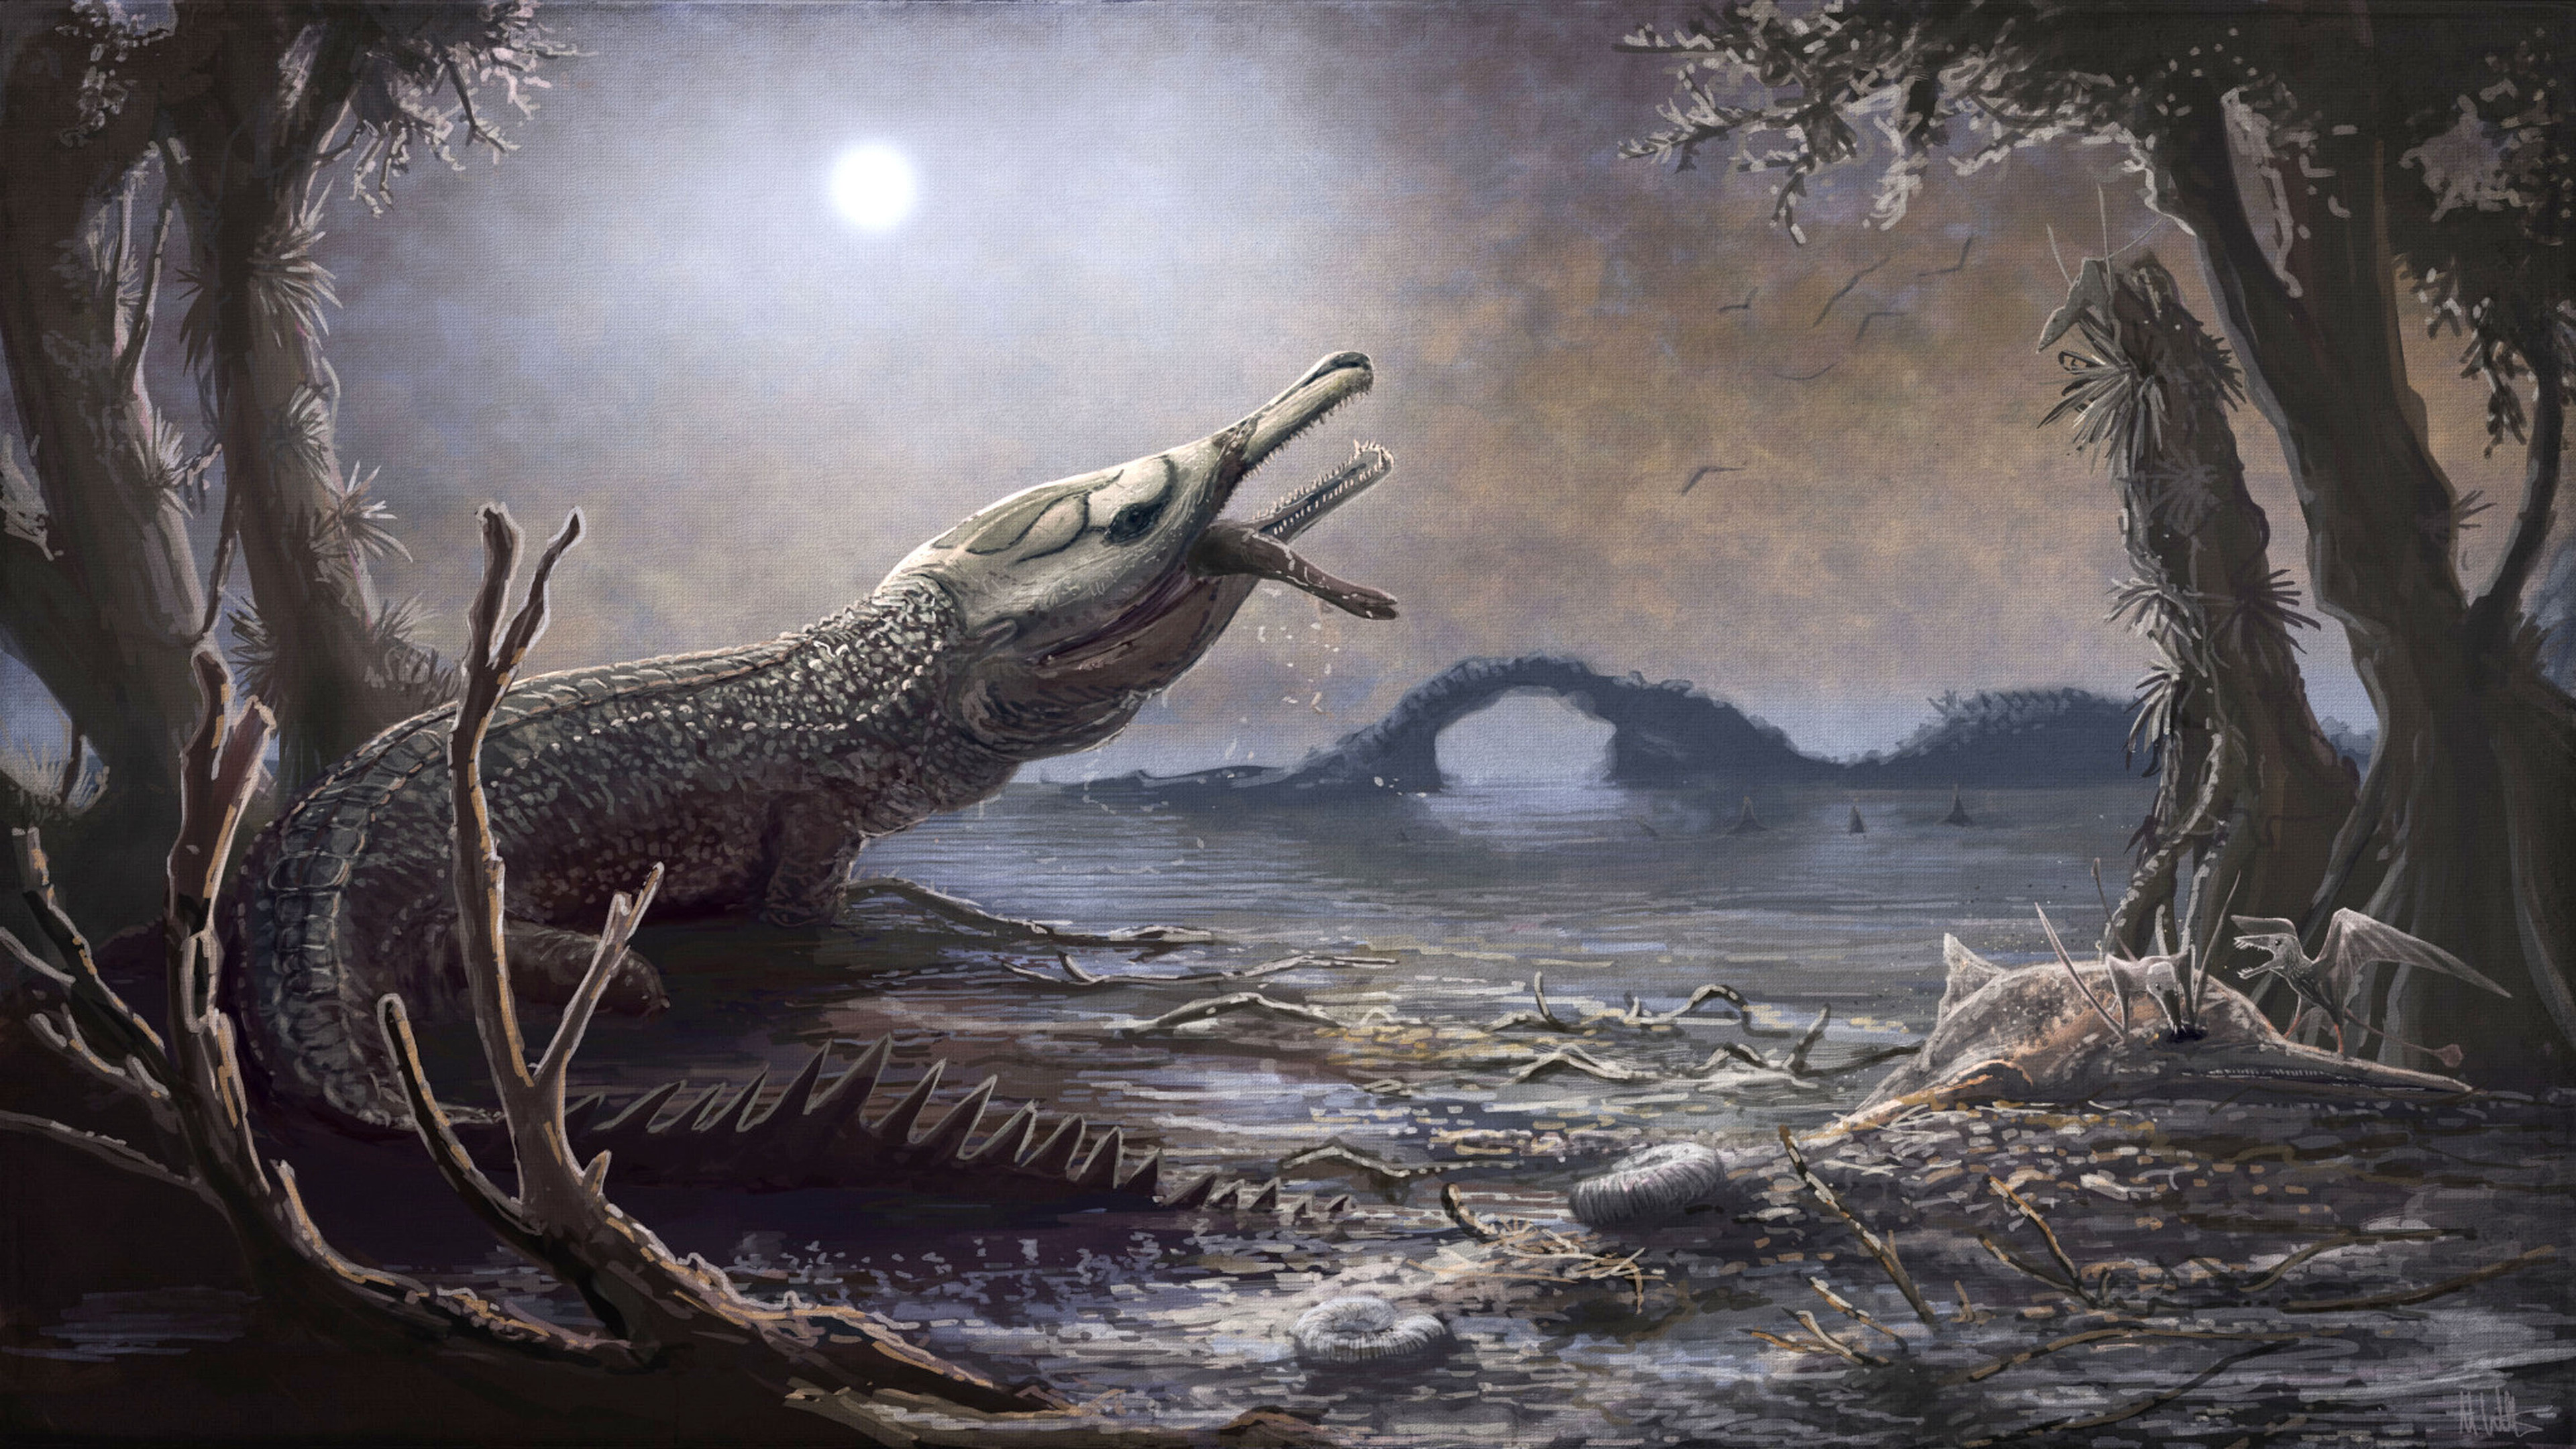 Motorhead frontman Lemmy has giant marine crocodile named after him